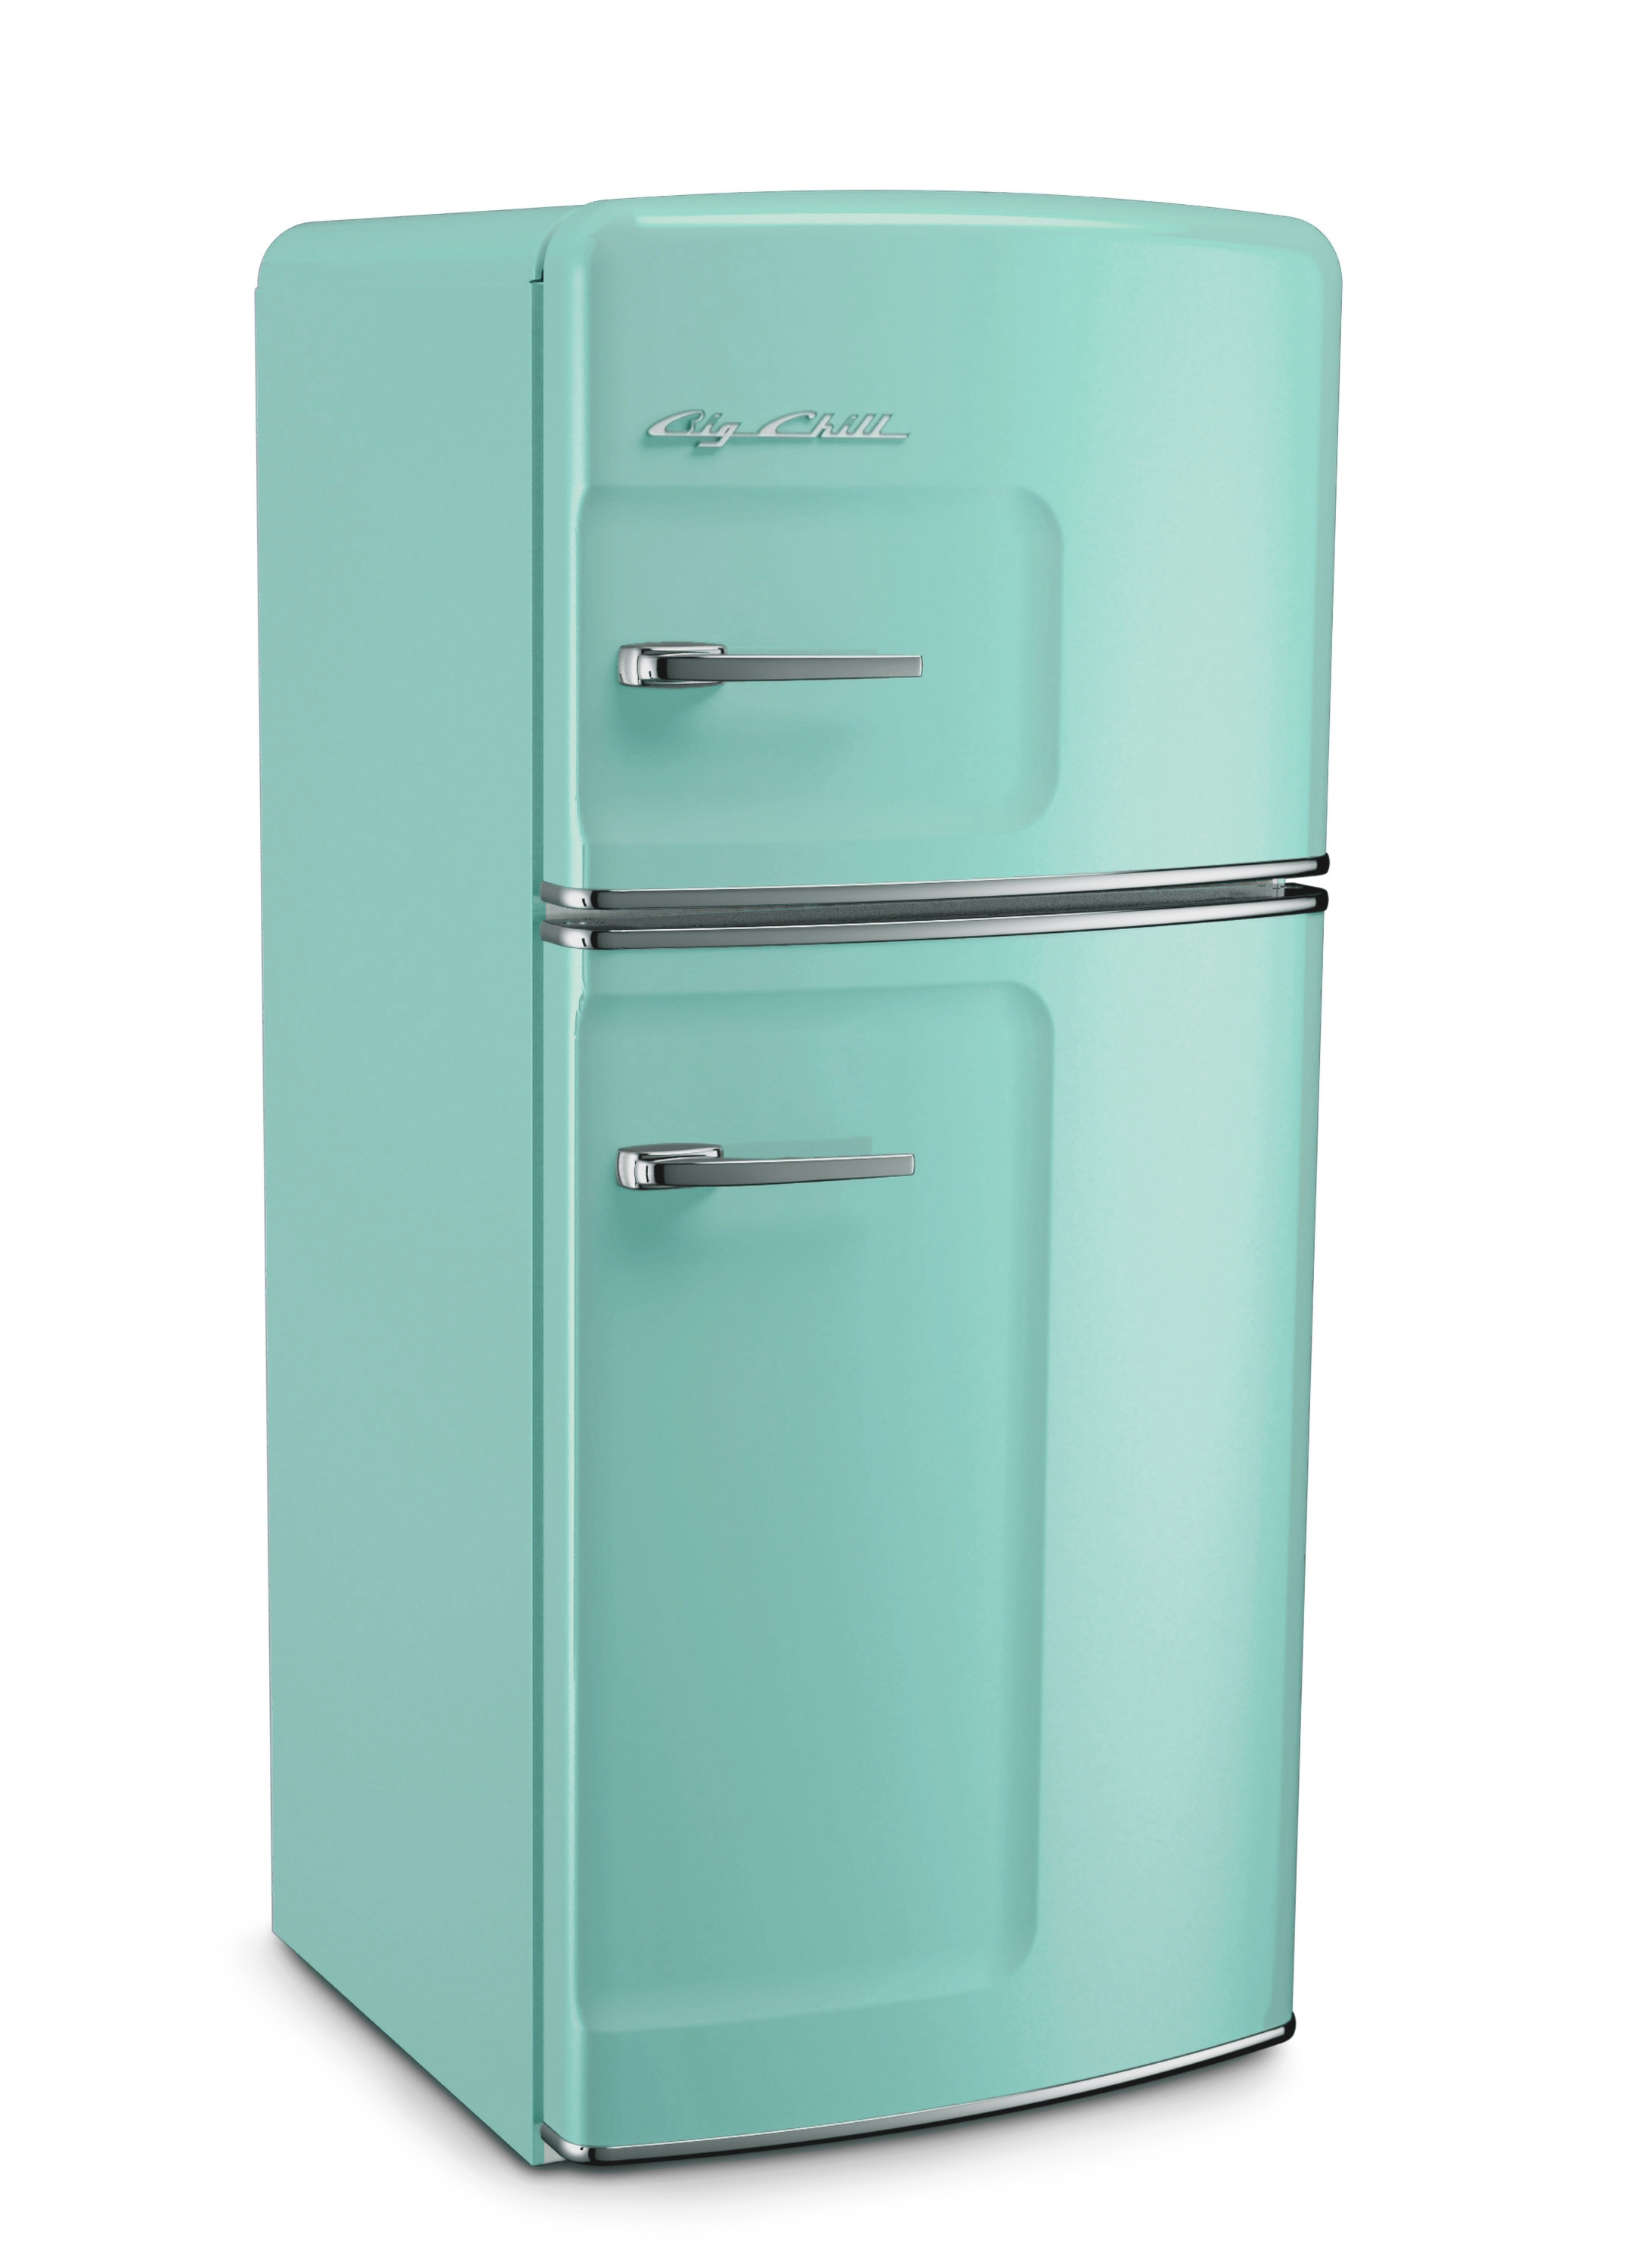 turquoise kitchen appliances wall paper big chill showcases new designs colors and products at